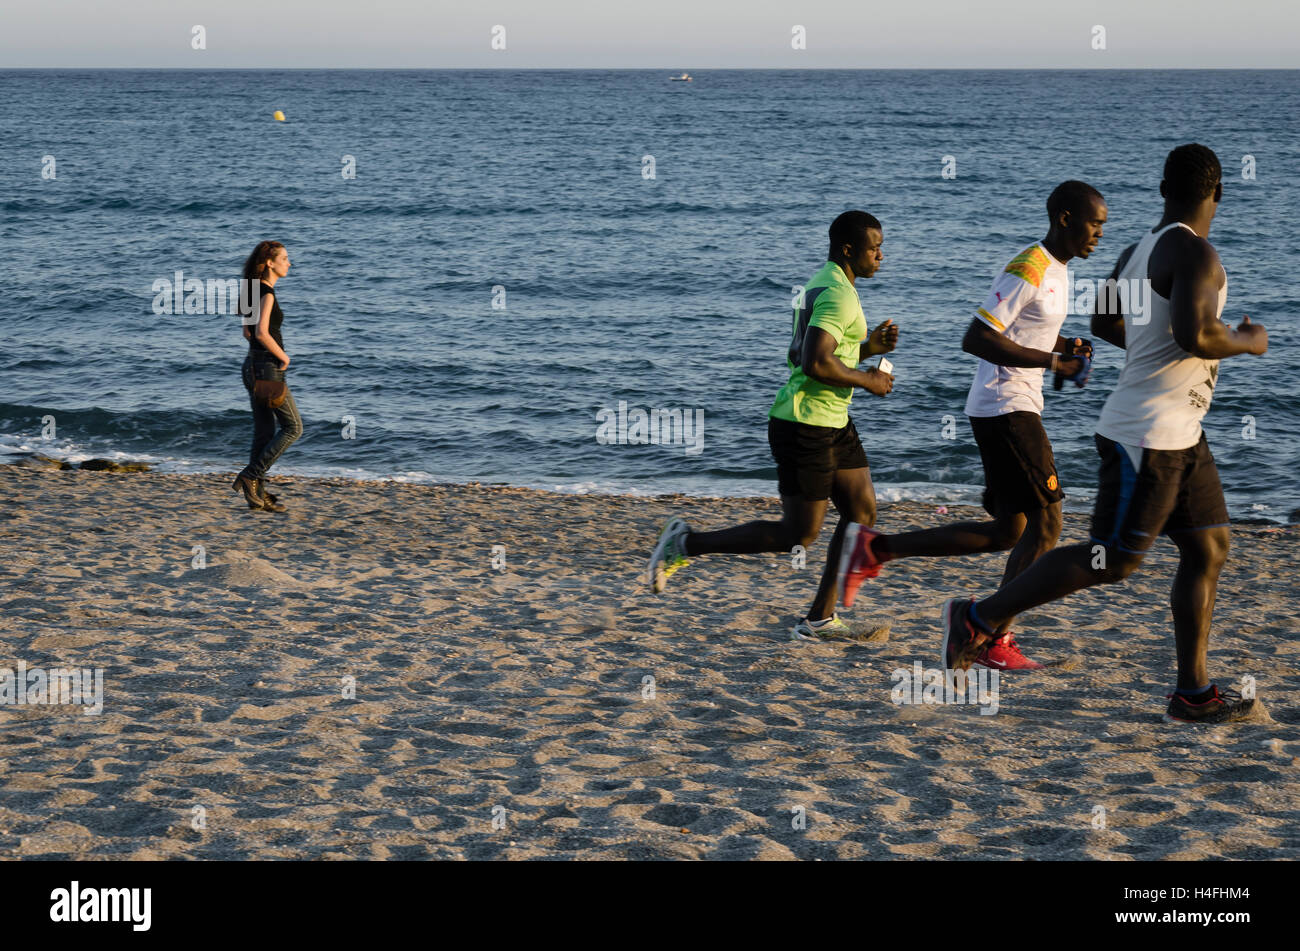 A runners view in a beach of Carboneras, Almería, Spain - Stock Image